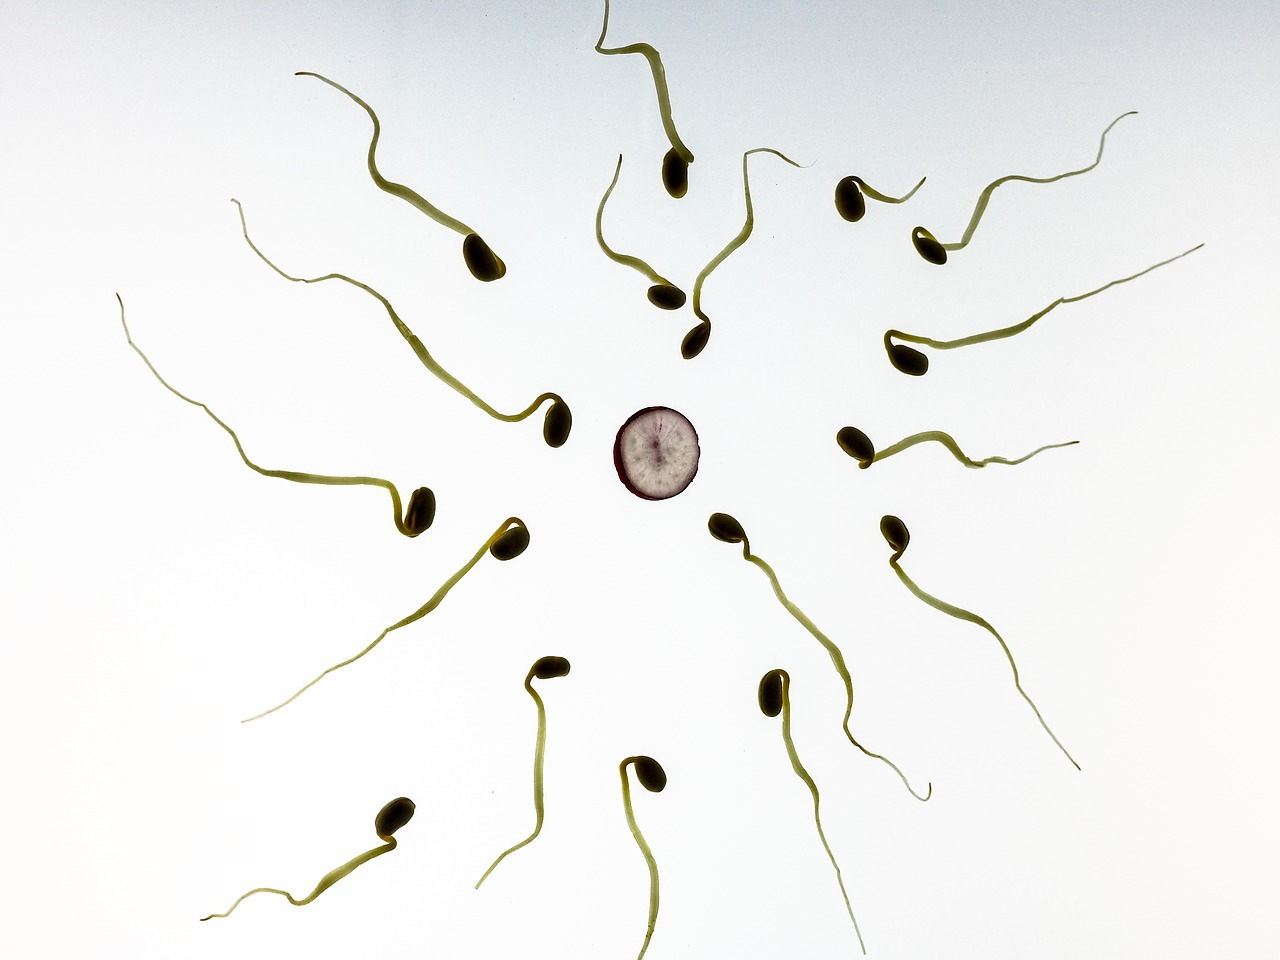 A close up of sperm surrounding the egg.